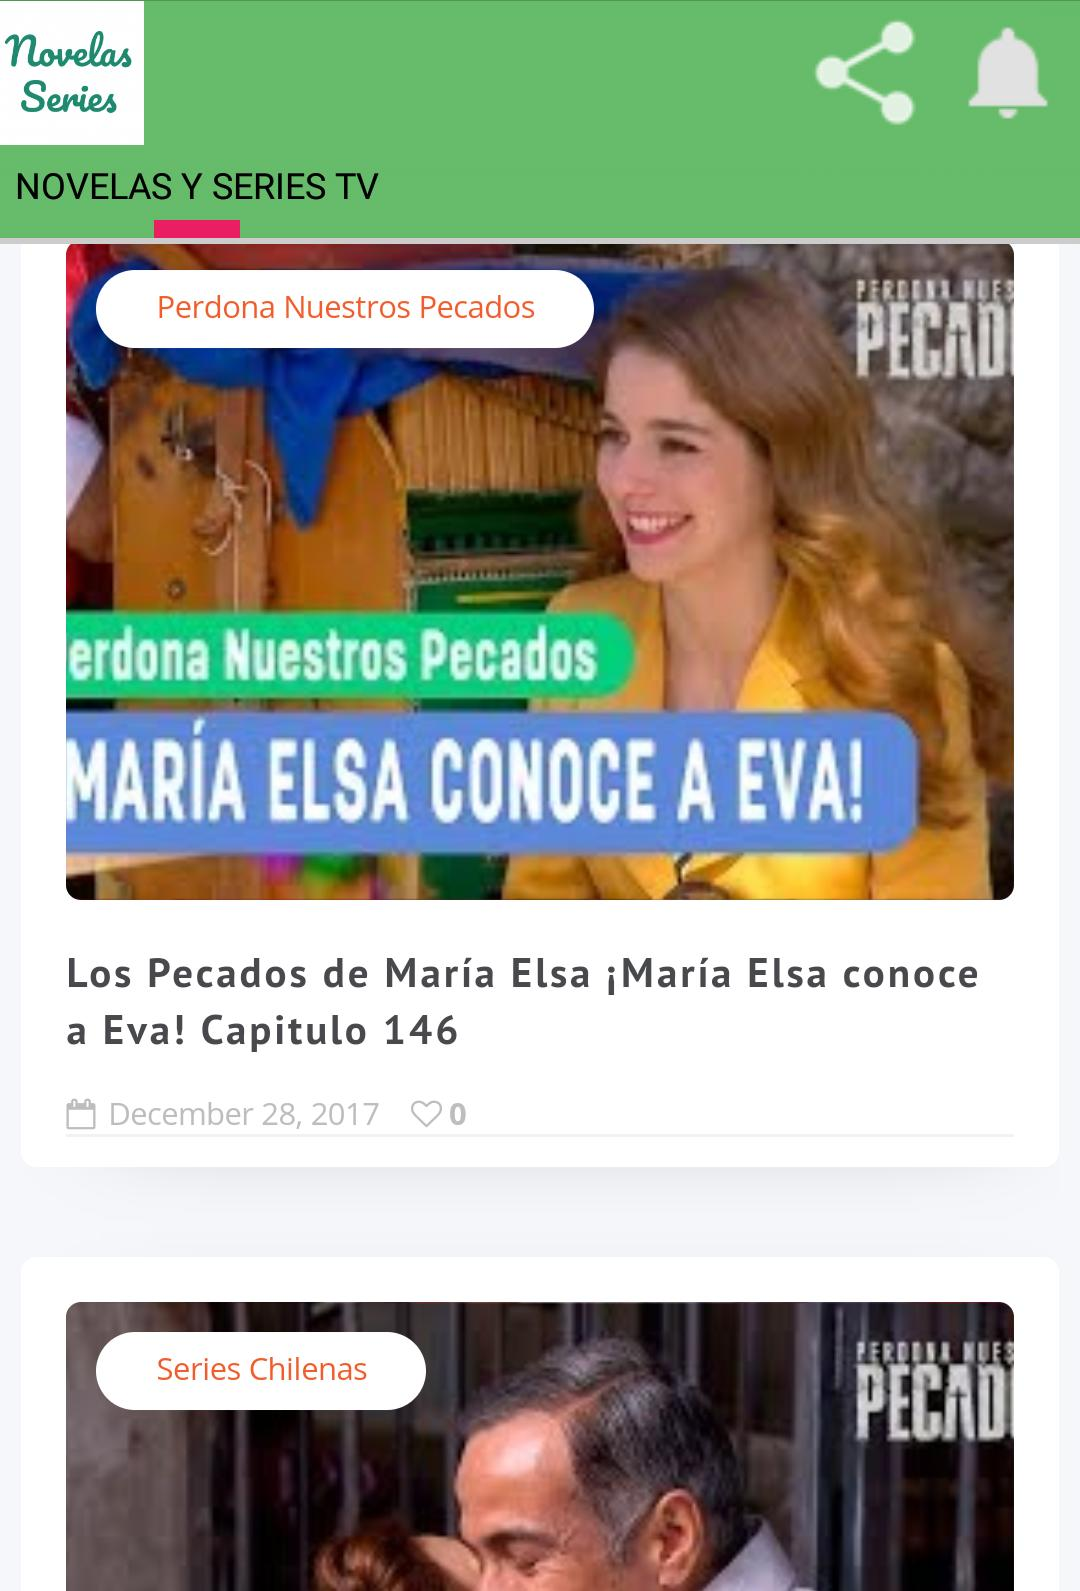 Novelas Y Series TV for Android - APK Download